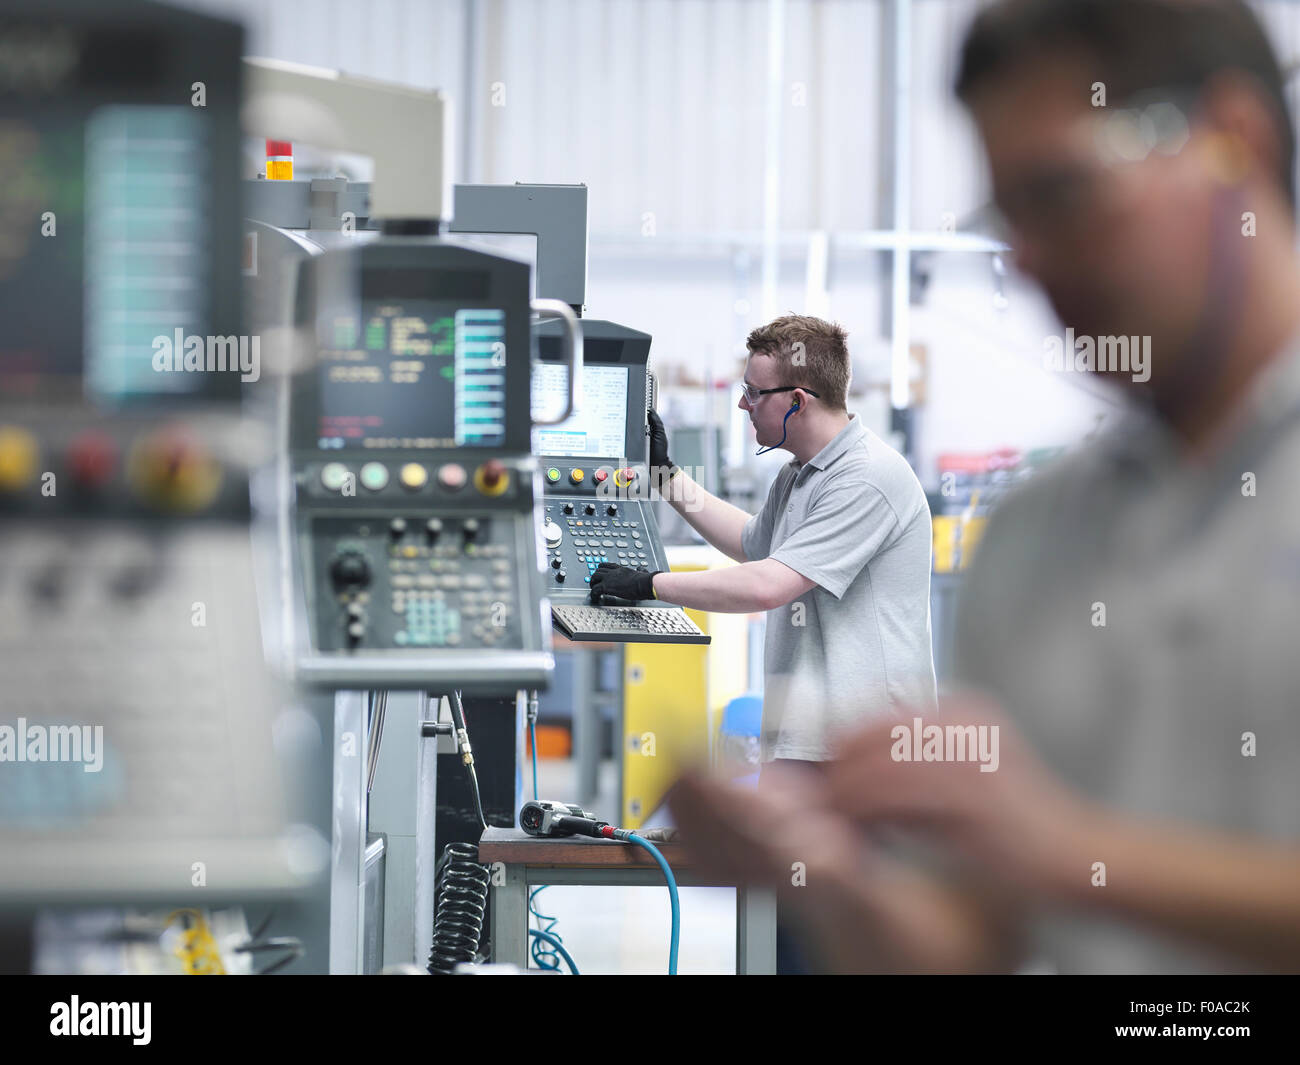 Engineers operating CNC lathes in factory - Stock Image